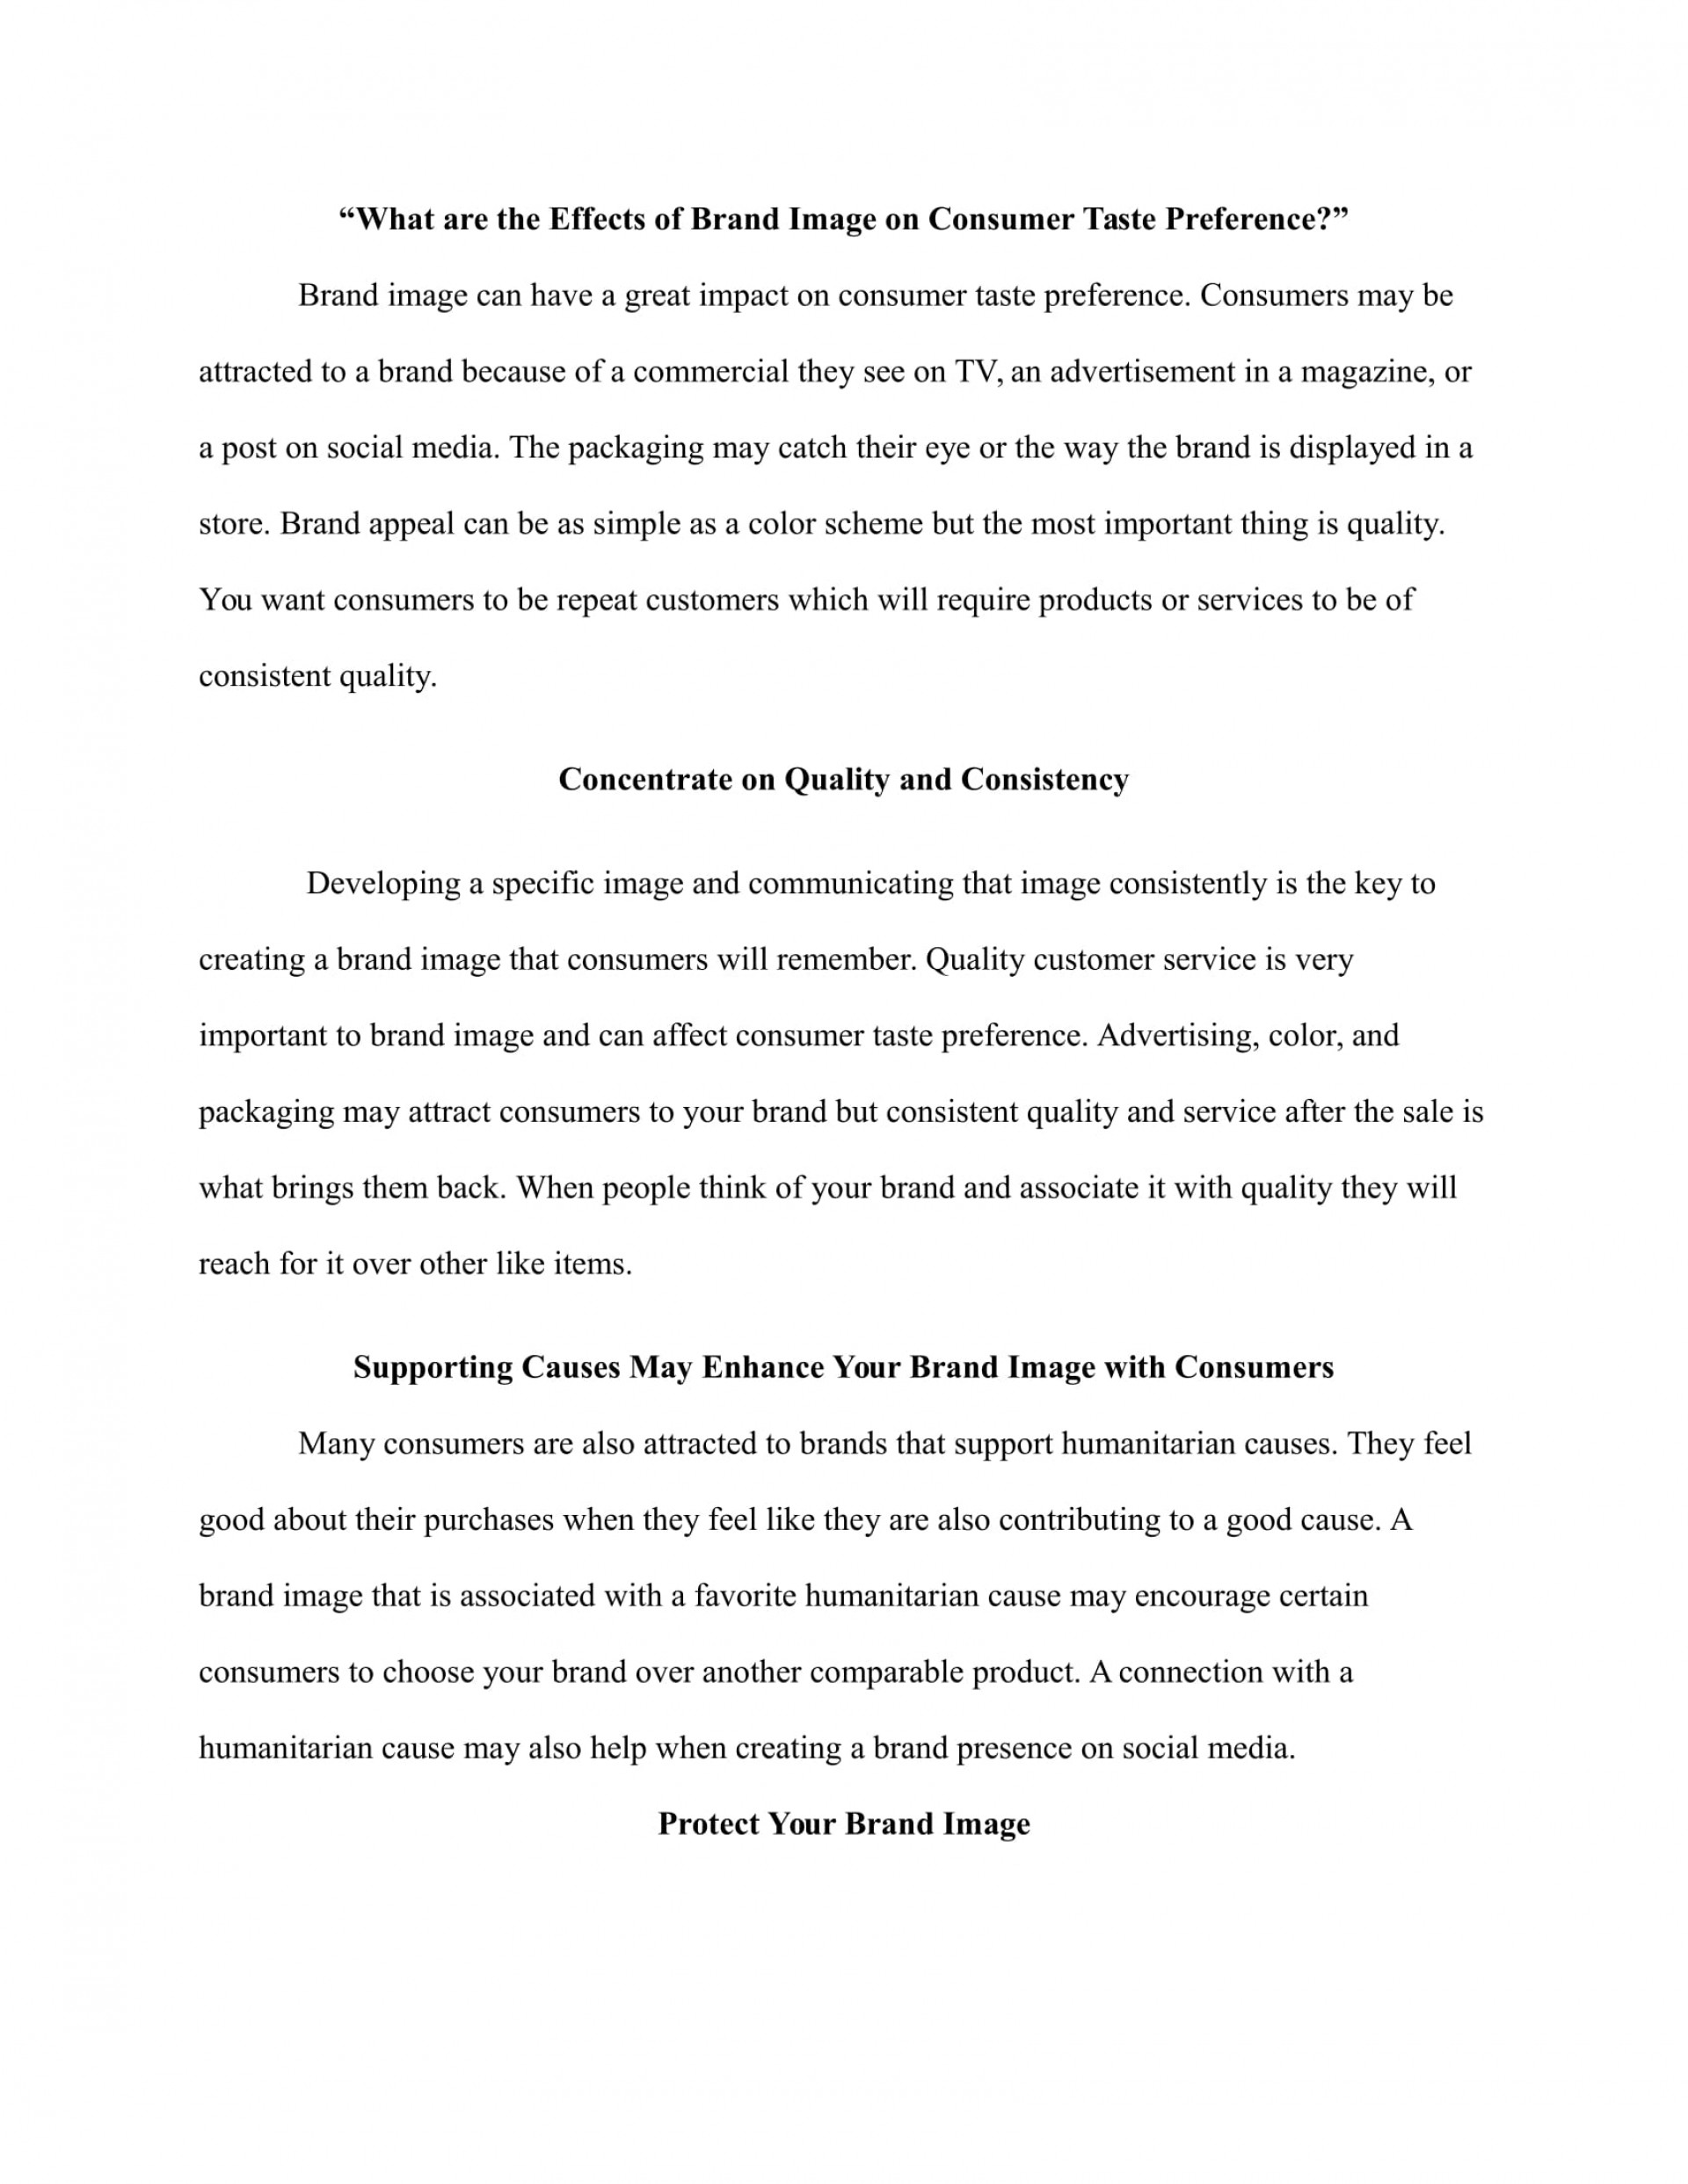 001 Expository Essay Samples Example Sample Impressive Topics Grade 5 O Level Essays For High School Students 1920